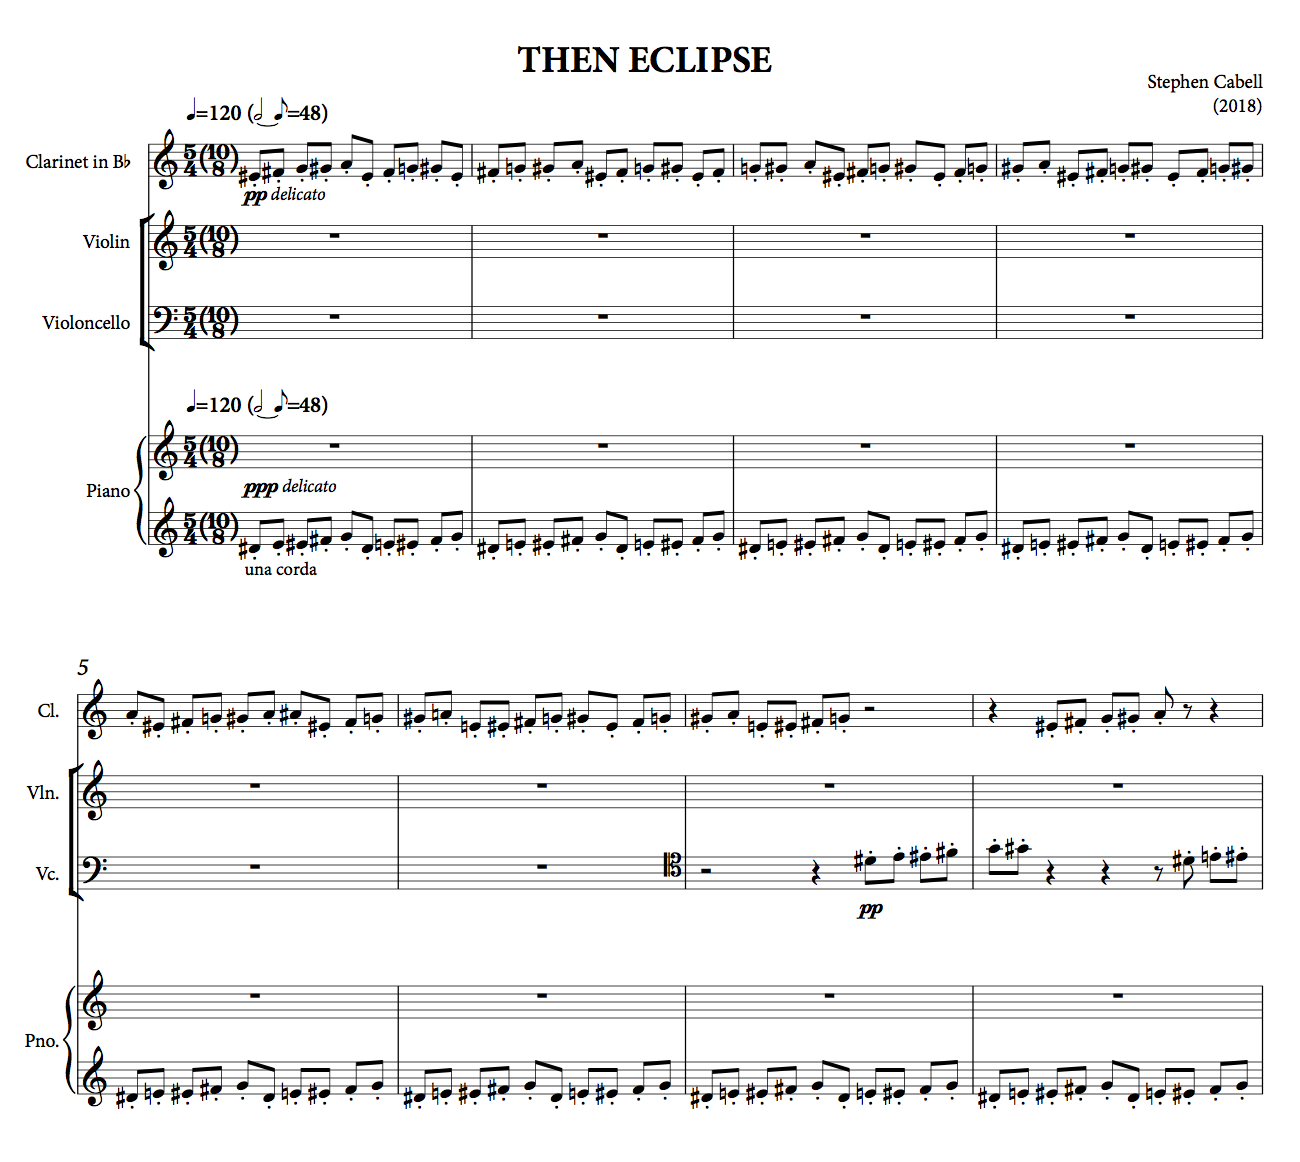 THEN ECLIPSE full score: page 1